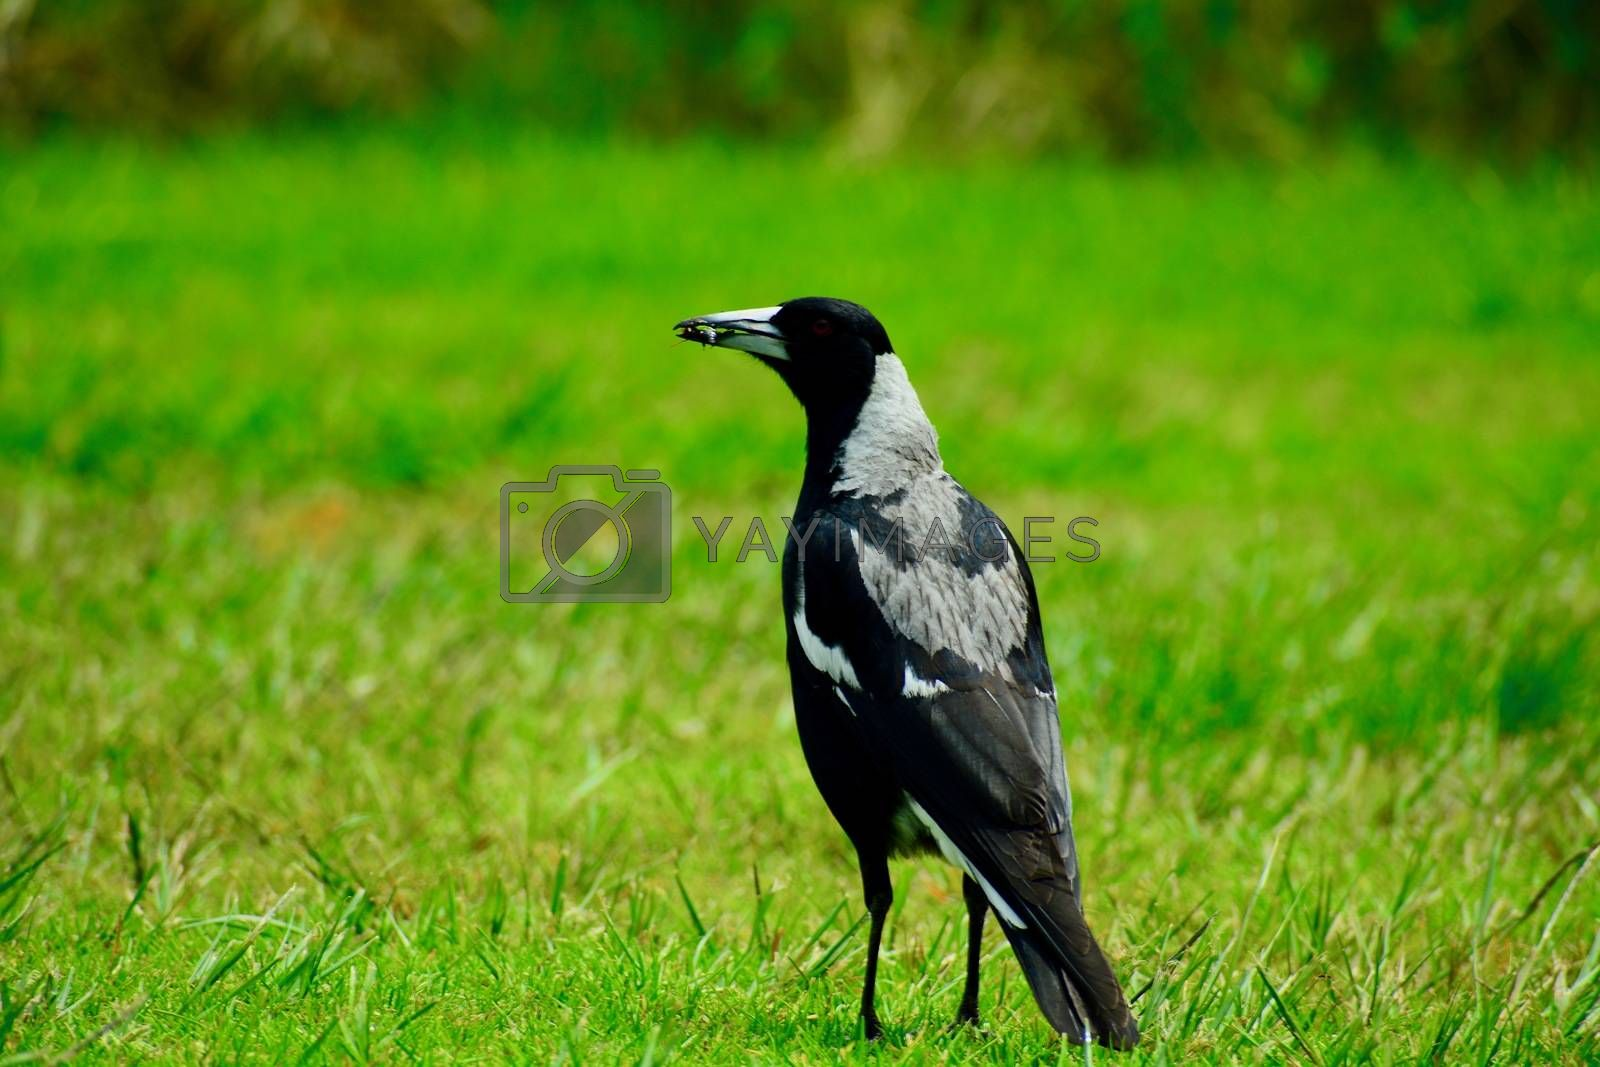 Australian magpies mainly feed on invertebrates, taken mostly from the ground.